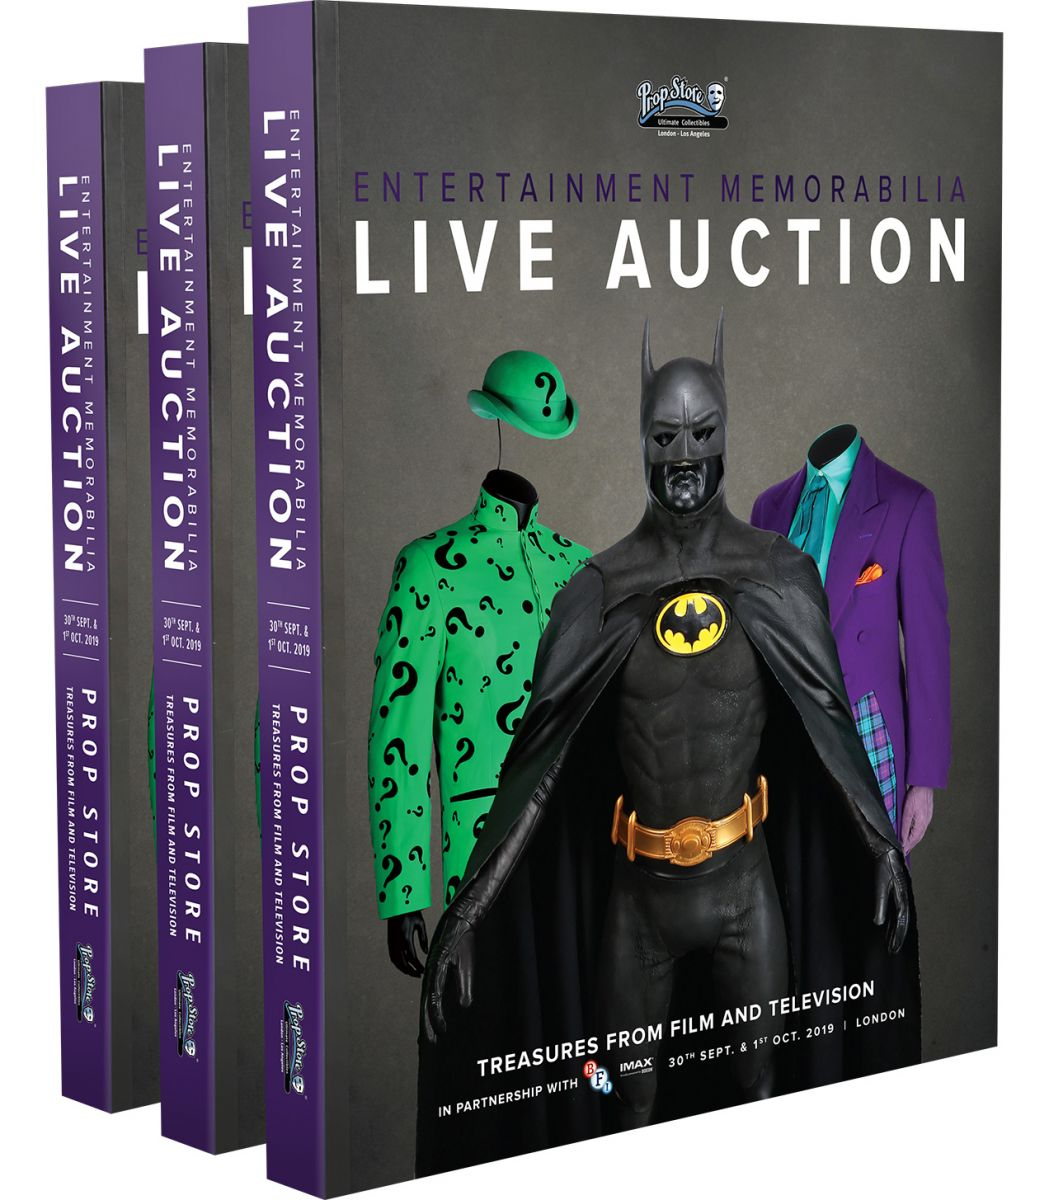 Win a Prop Store Live Auction Printed Cataloge